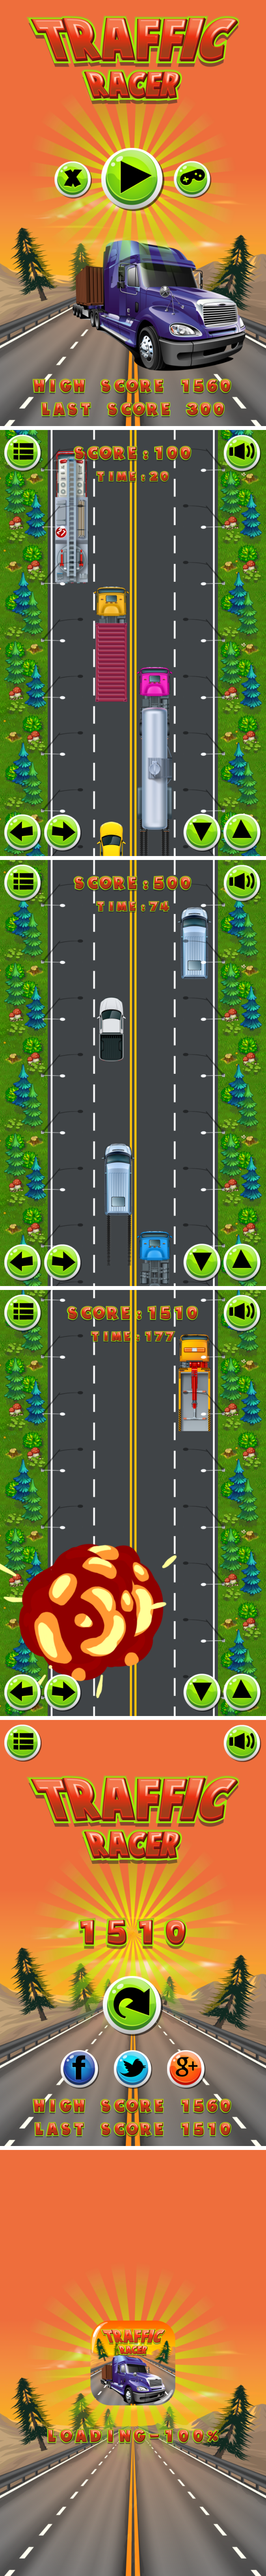 Traffic Racer - HTML5 Game + Mobile Version + AdMob! (Construct 3 | Construct 2 | Capx) - 3